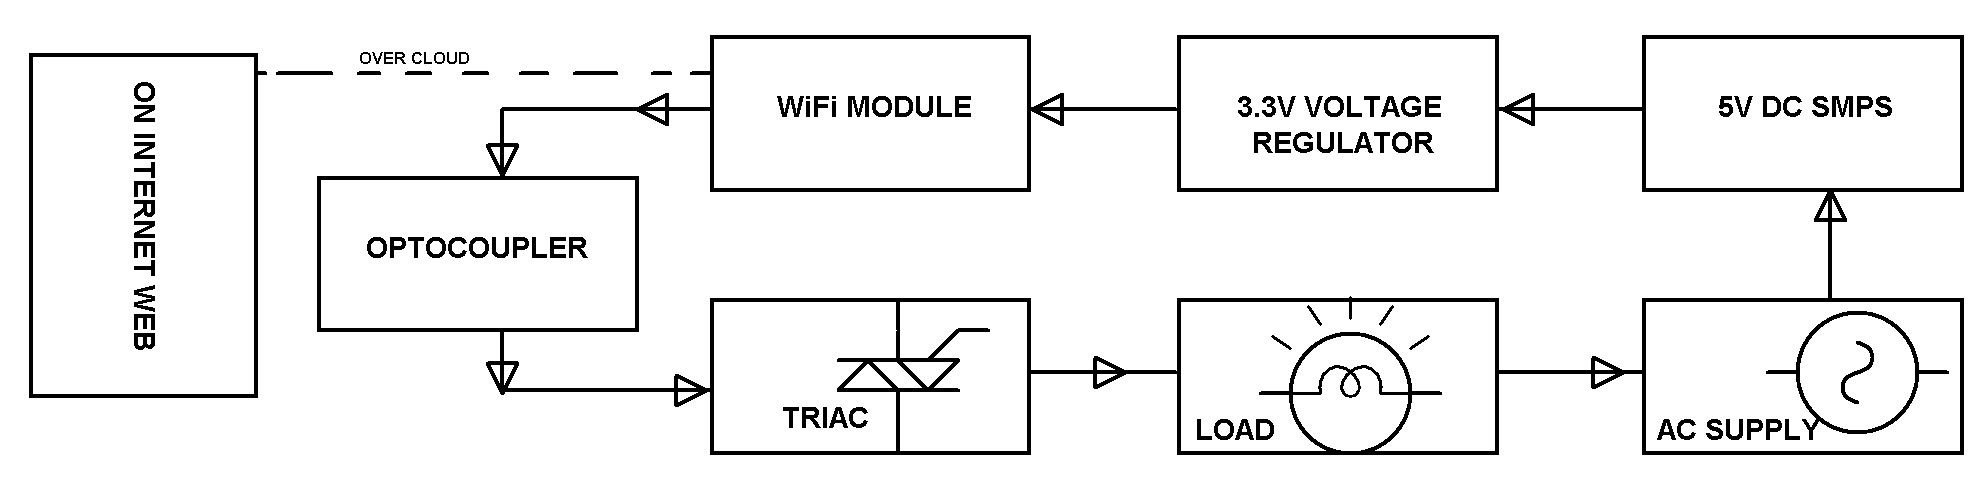 Iot Based Home Automation Over The Cloud Free Electronics Circuits Dc Control For Triacs Loadcontrol Standalone Wi Fi Is To Any Load Through Internet Network